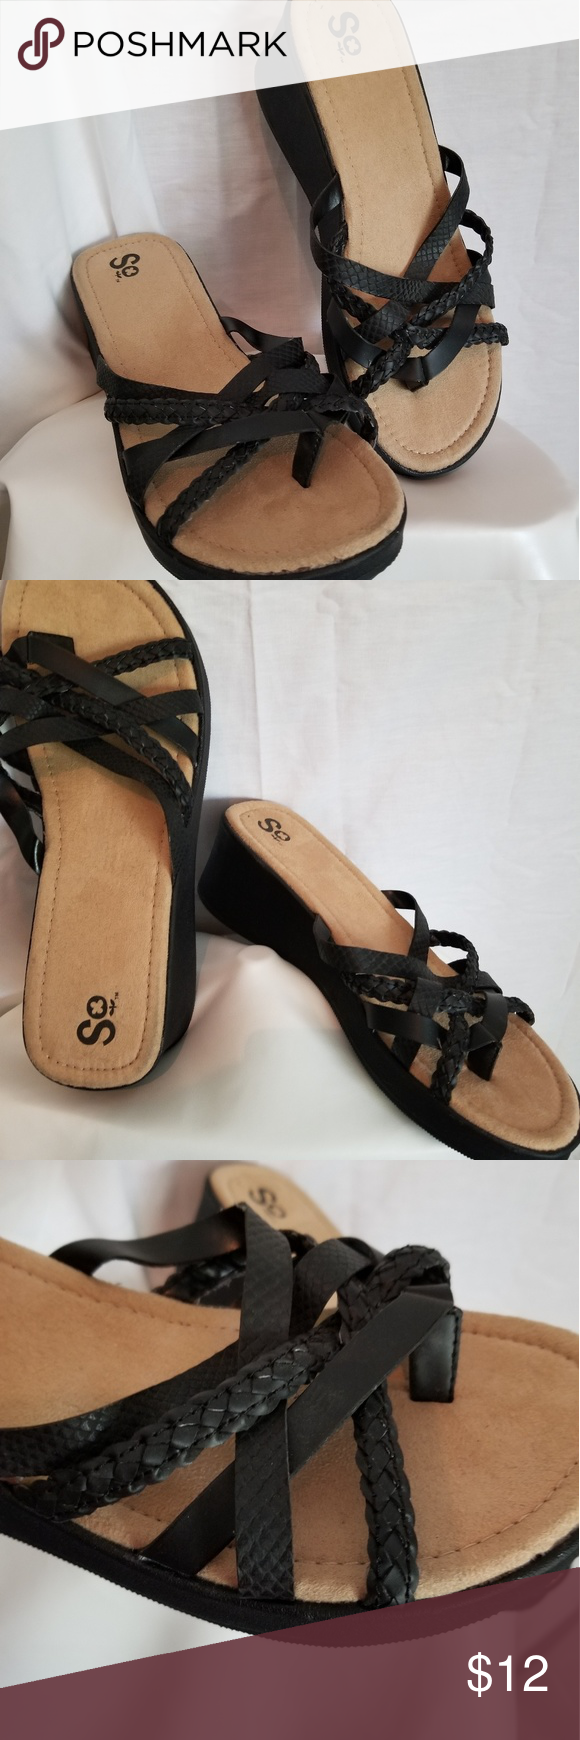 3df4aff06925 Black Sandals by SO In brand new condition